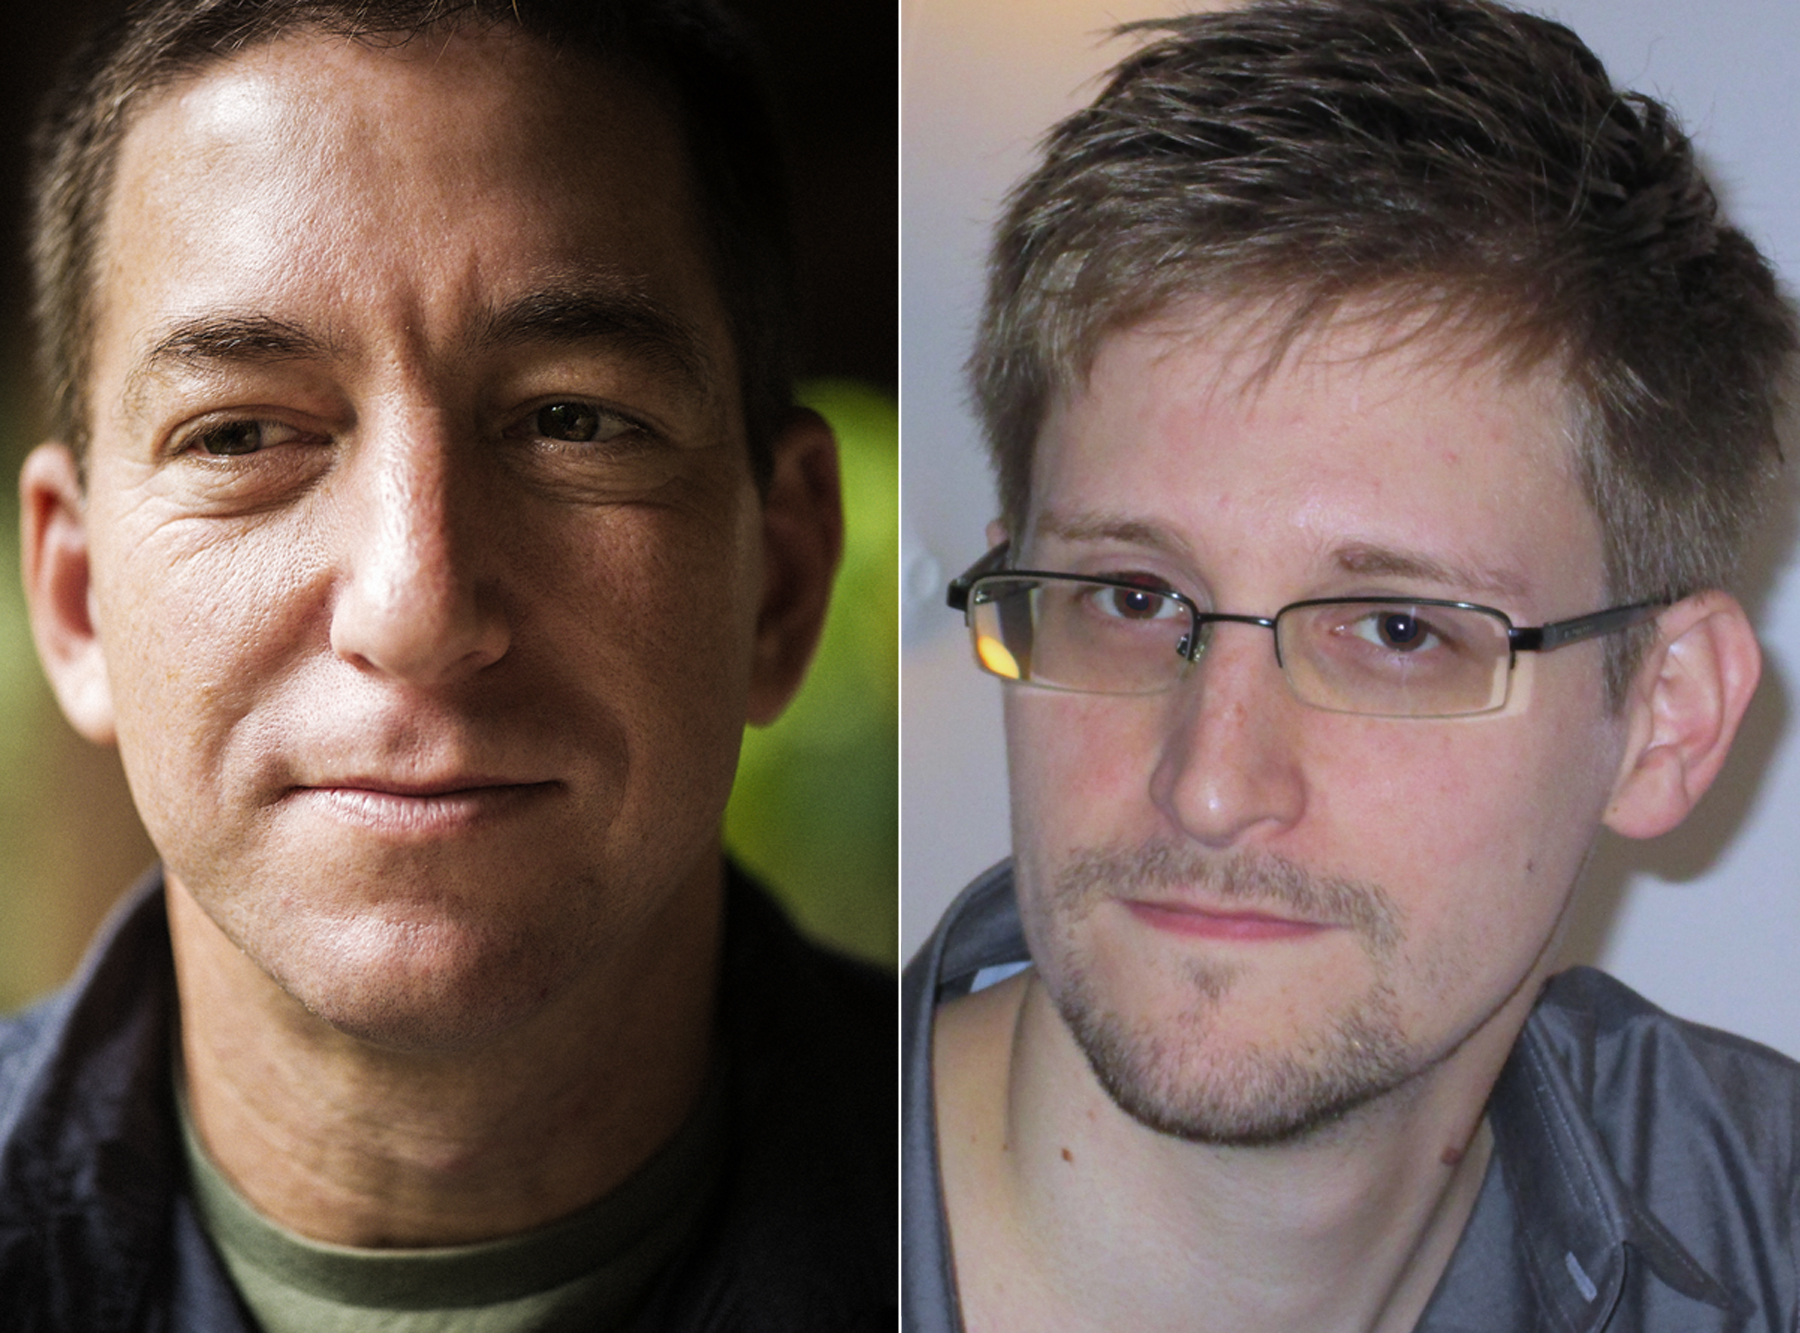 Snowden and Greenwald: The Men Who Leaked the Secrets